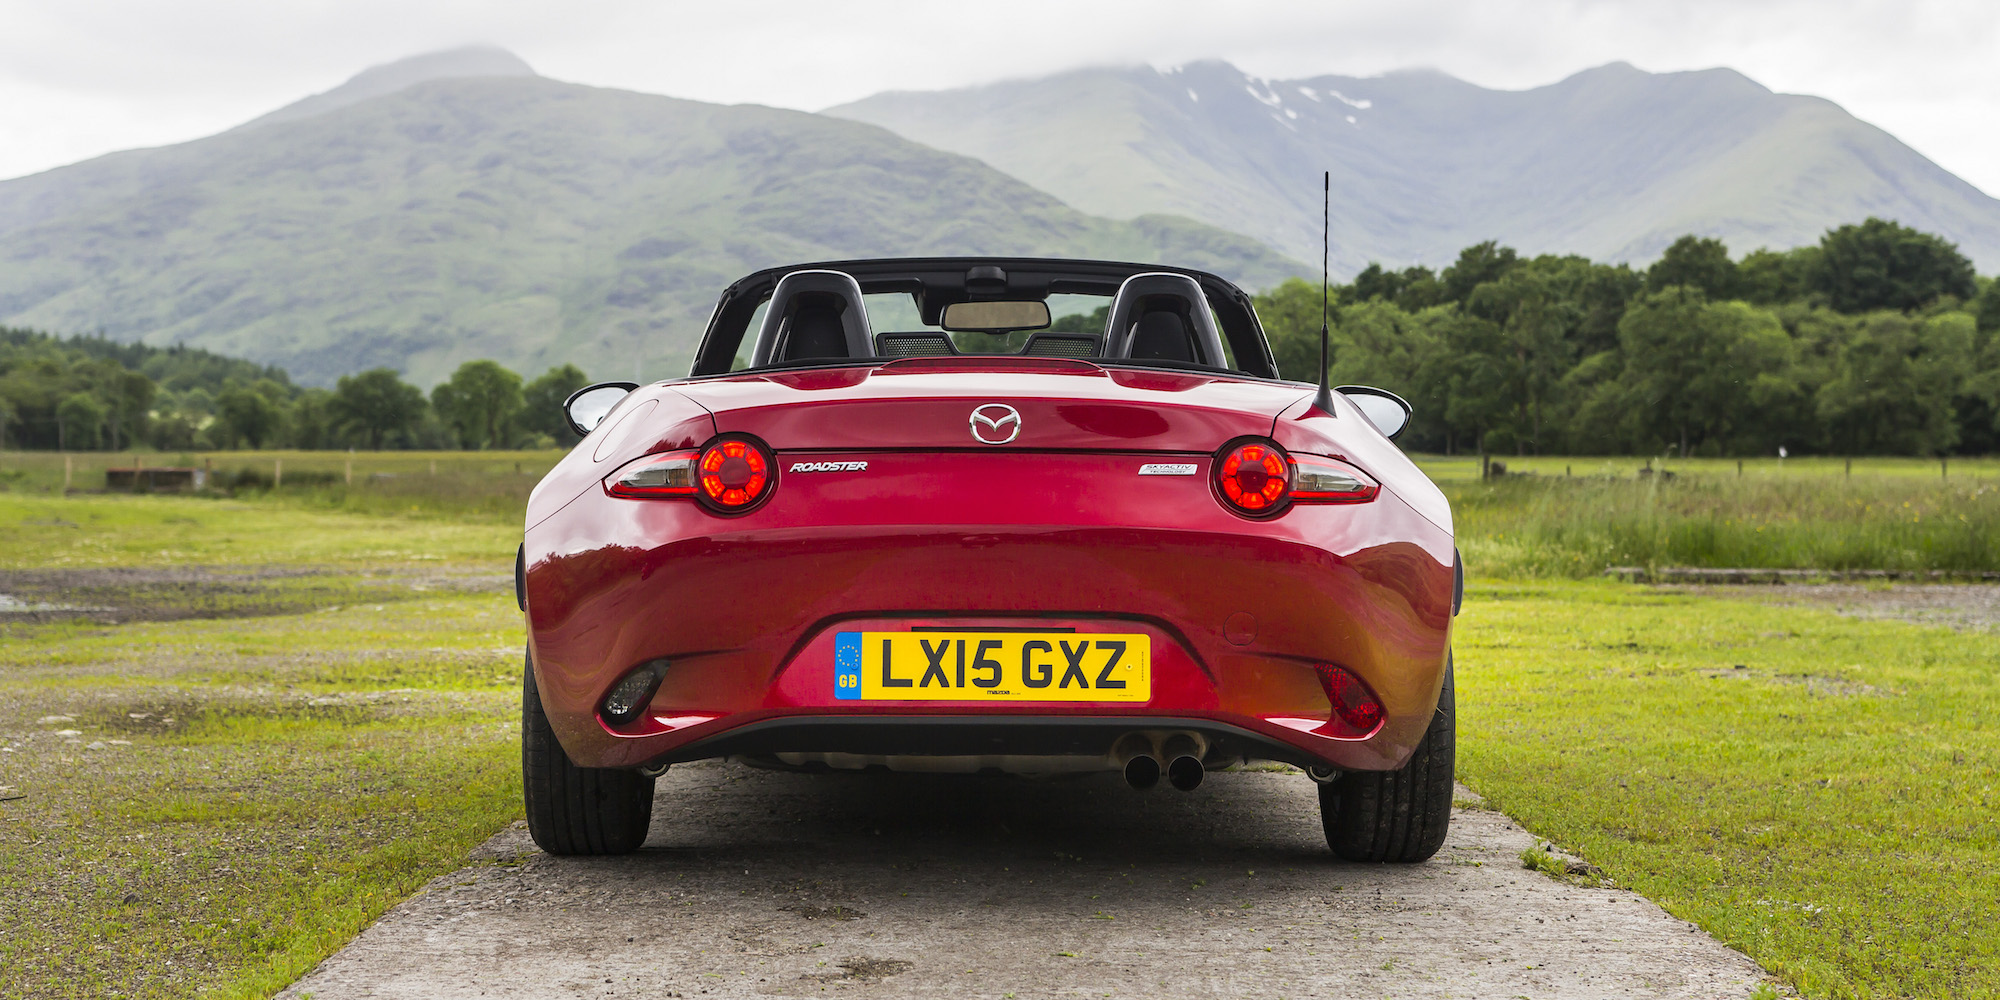 2016 Mazda Mx 5 Rear End Design (Photo 24 of 31)